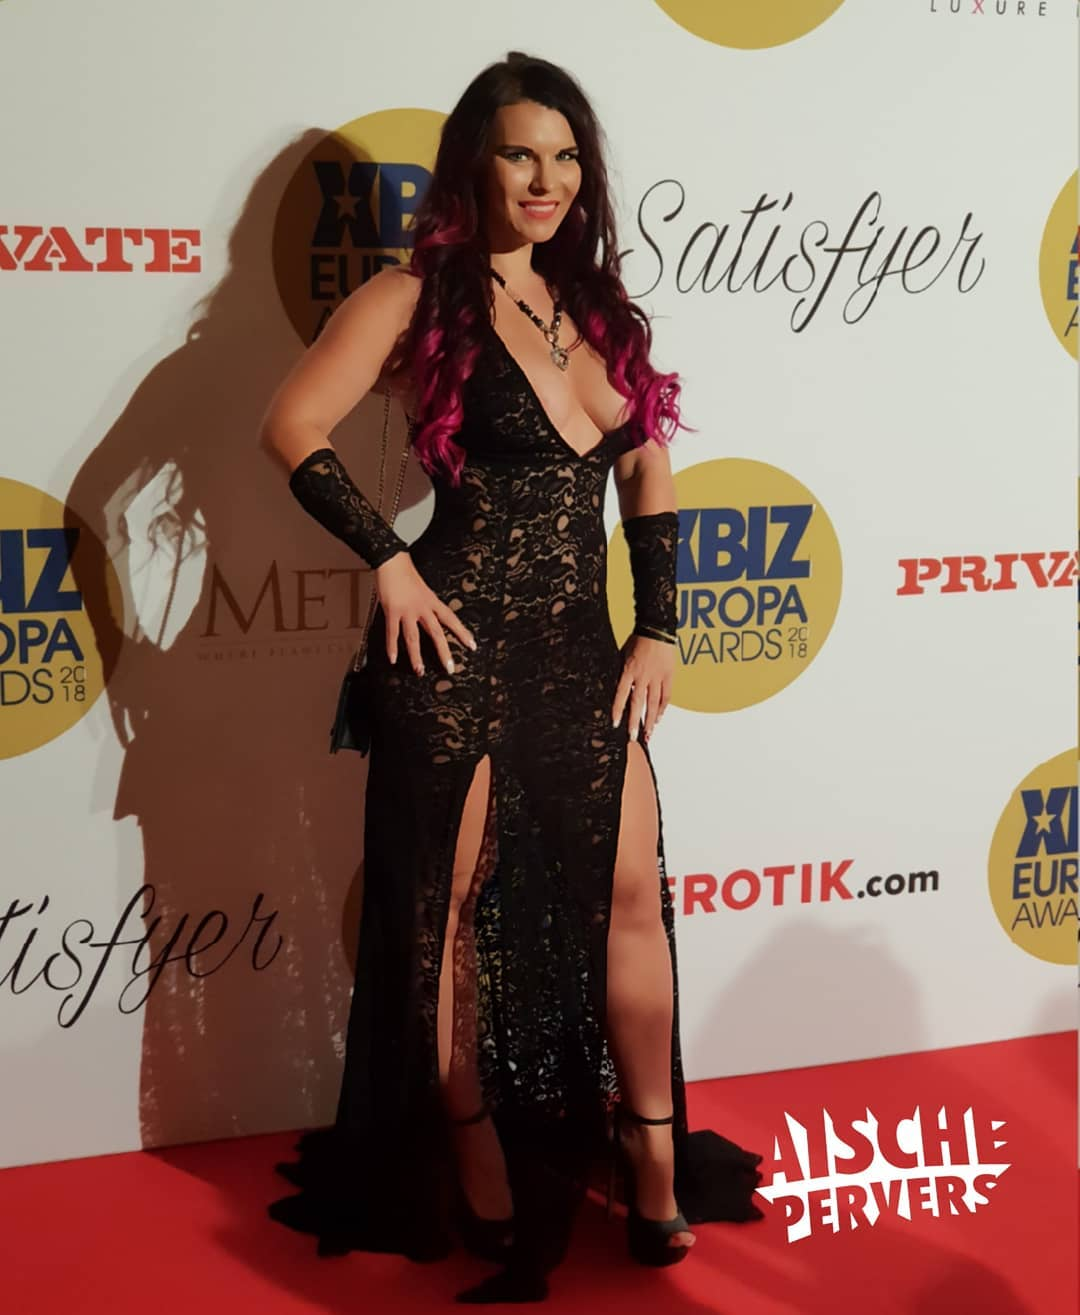 Tnx for a great evening @xbizofficial. It was a pleasure to meet so many great artists. Thanks to @roccosiffredi.official for the entertaining😘😘😘 and @erotik_com for the invitation. #redcarpet #xbiz #awards #awardnight #pornart #ballkleid #nude #boobs #eveningdress #gala #highheels #curvy #german #itgirl #influencer #fun #motivation